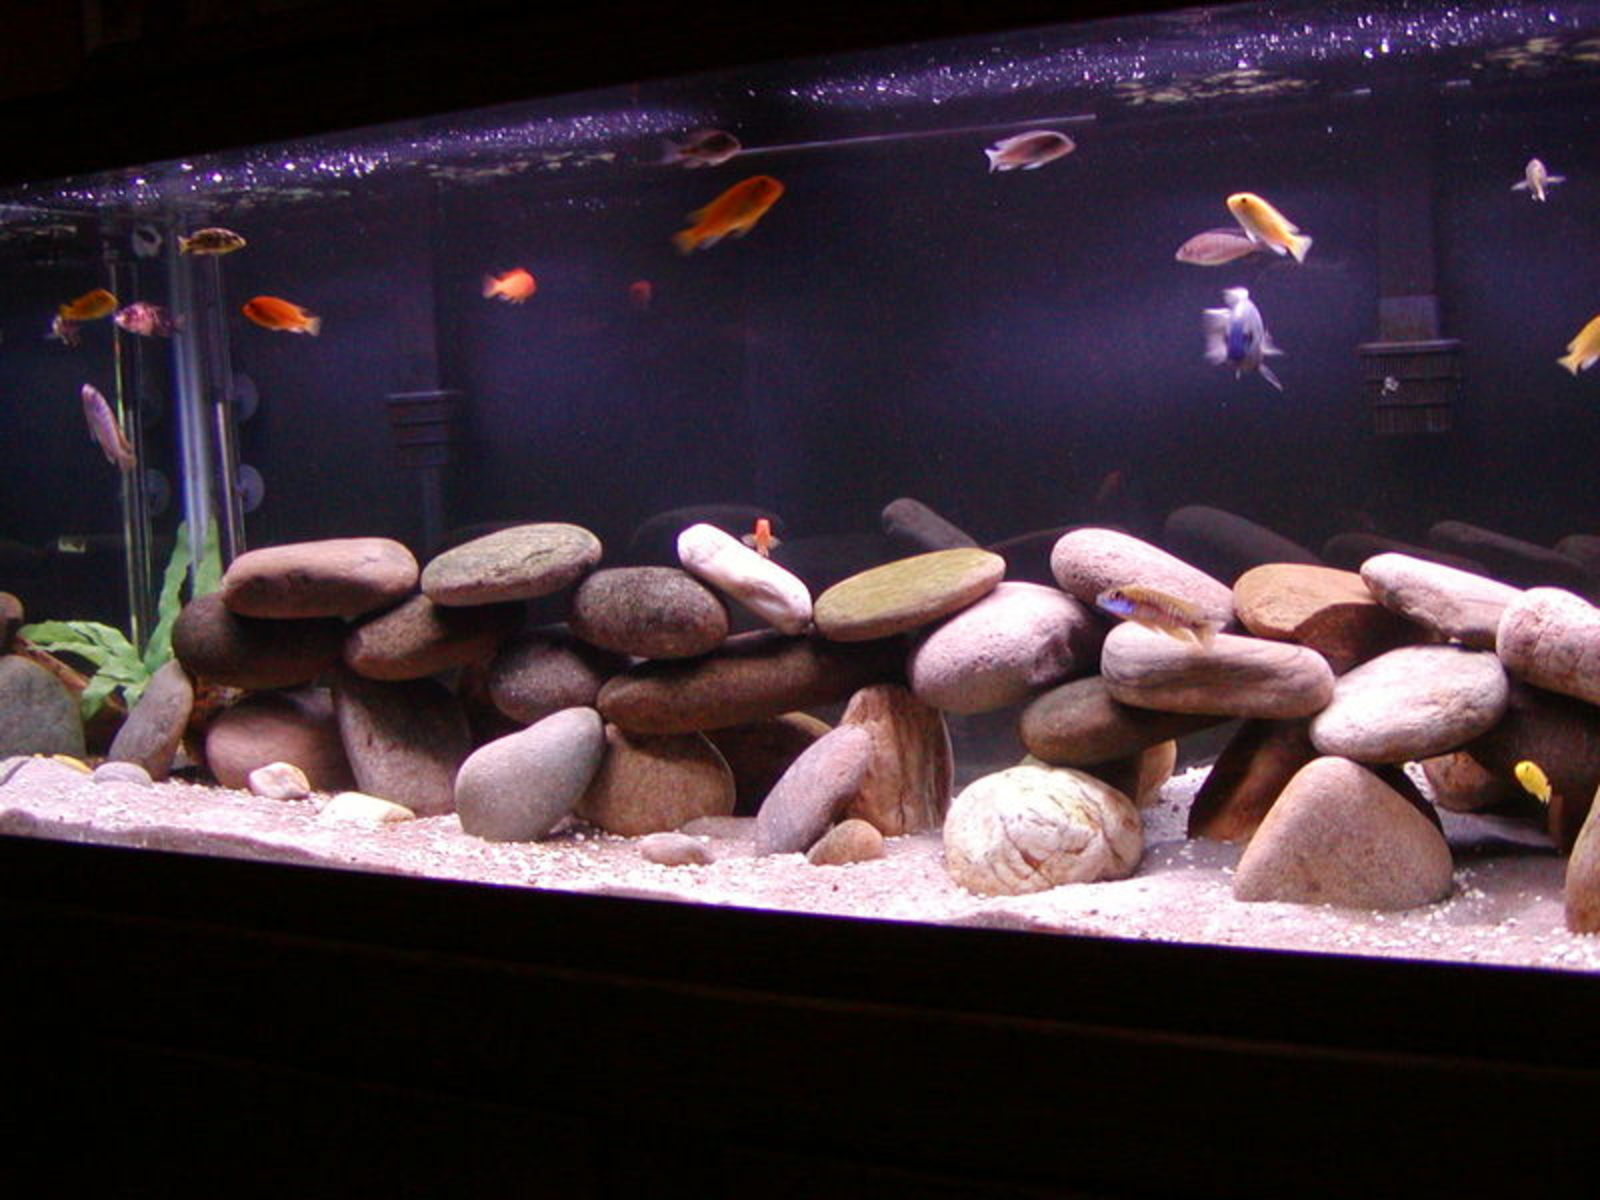 My 75 gallon mixed africans | by Maria Thomas